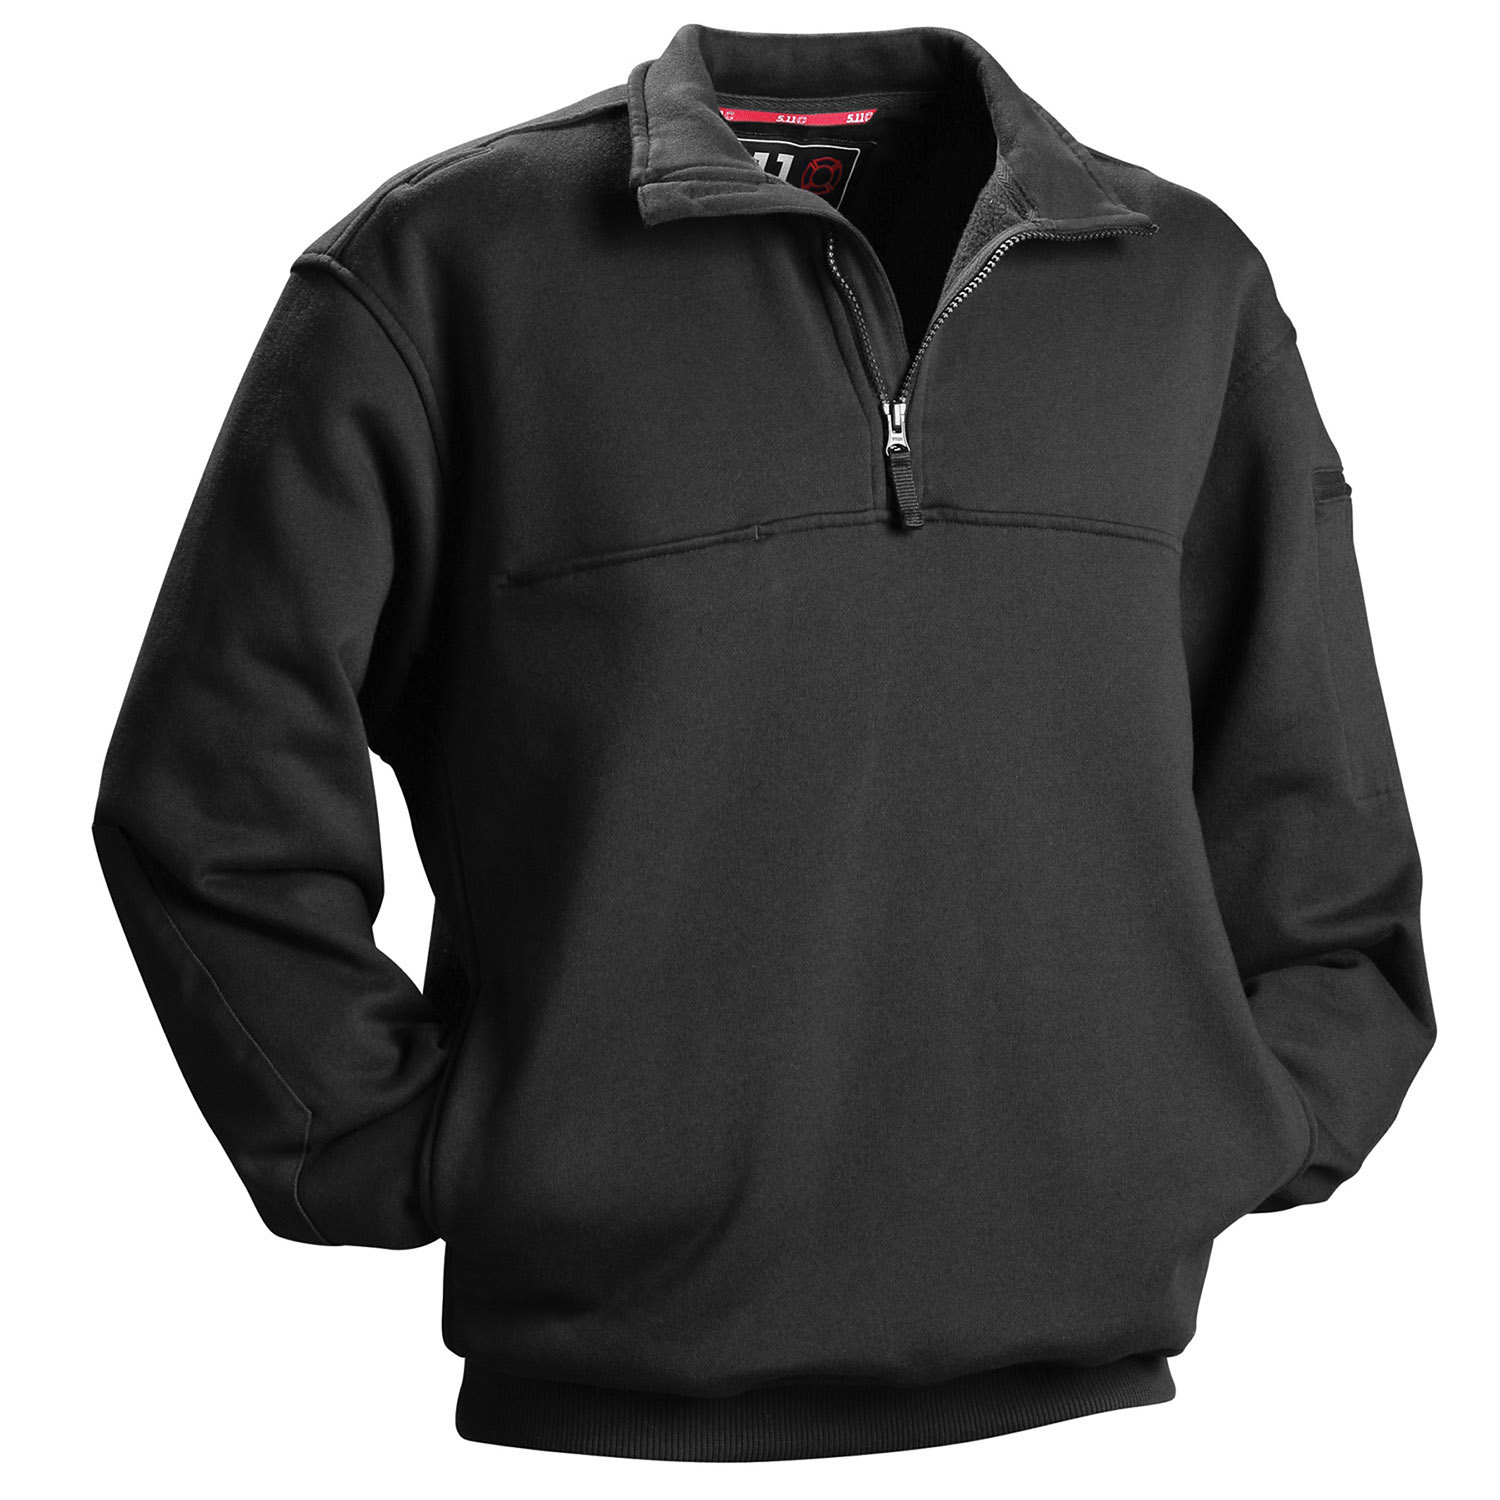 5.11 Tactical Firefighter Quarter-Zip Job Shirt, Black